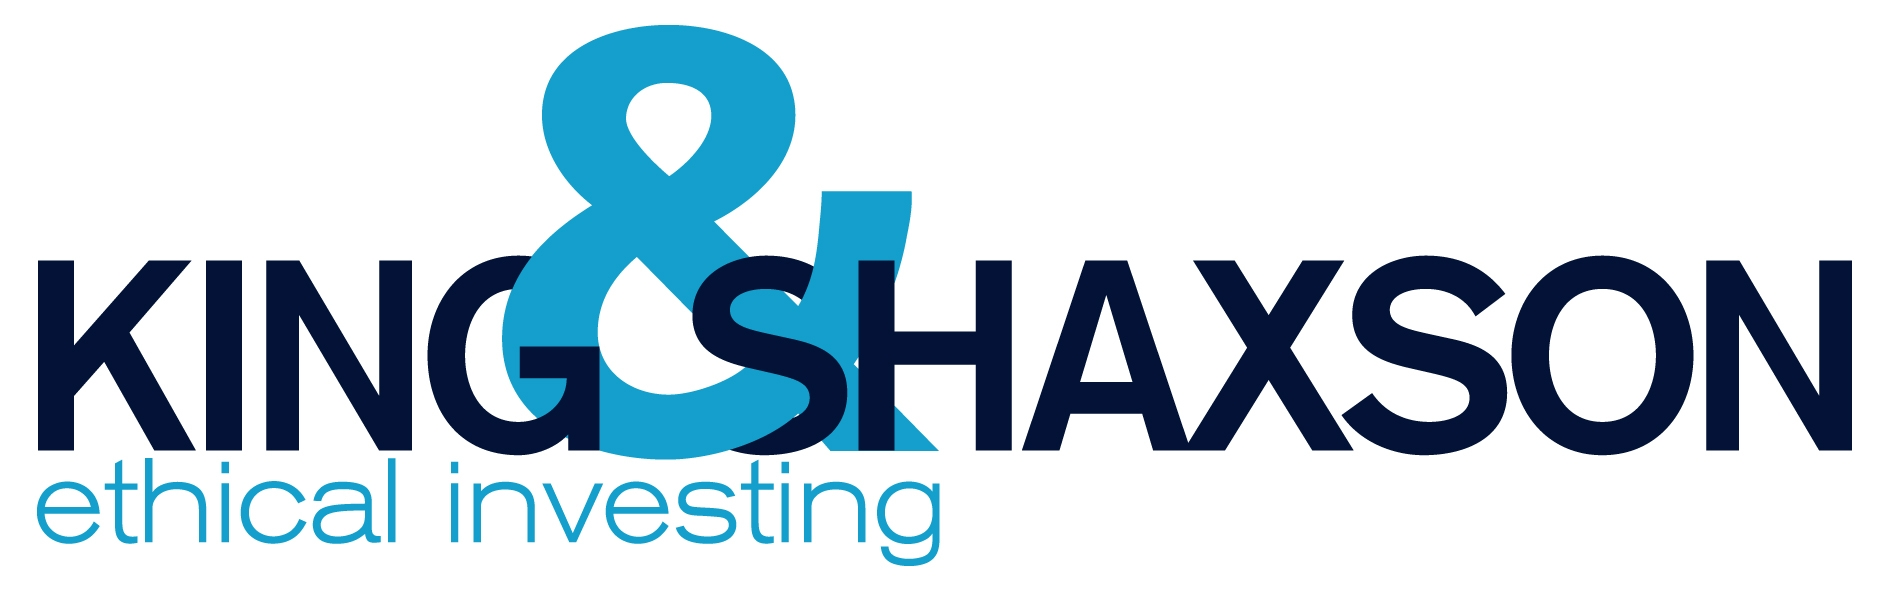 King and Shaxson - company logo